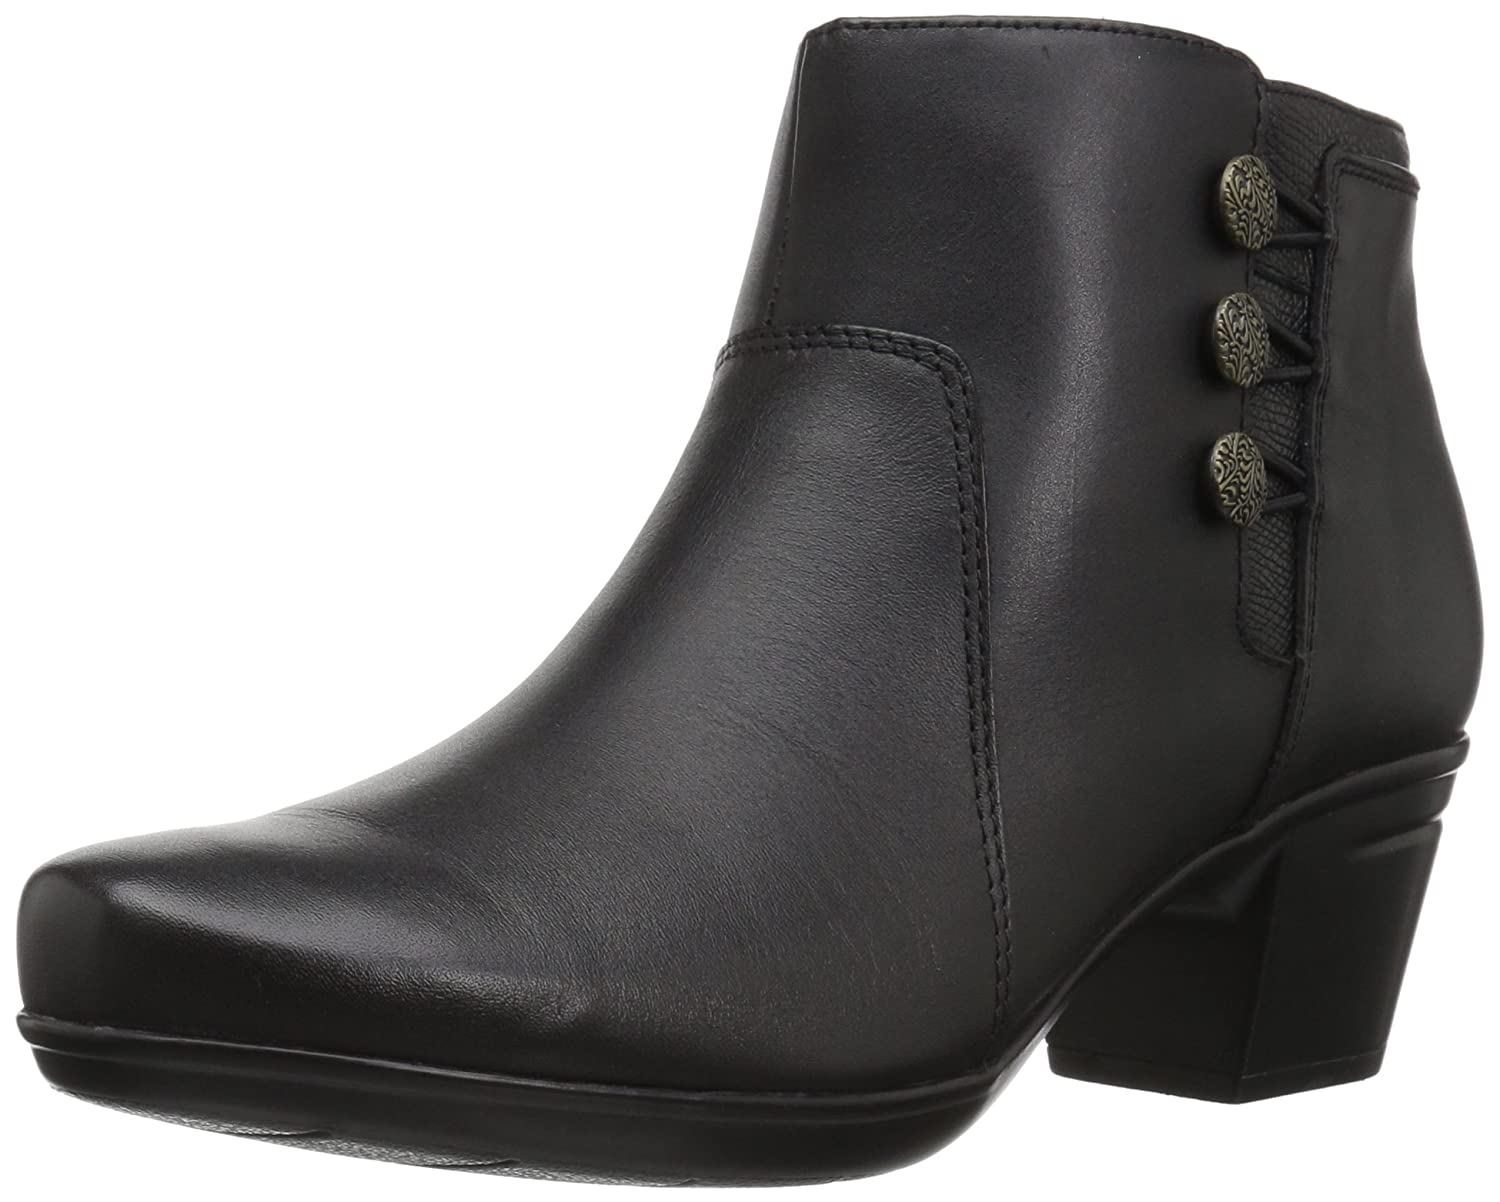 CLARKS Women's Emslie Monet Ankle Bootie B01MZ4YD81 7 W US|Black Leather